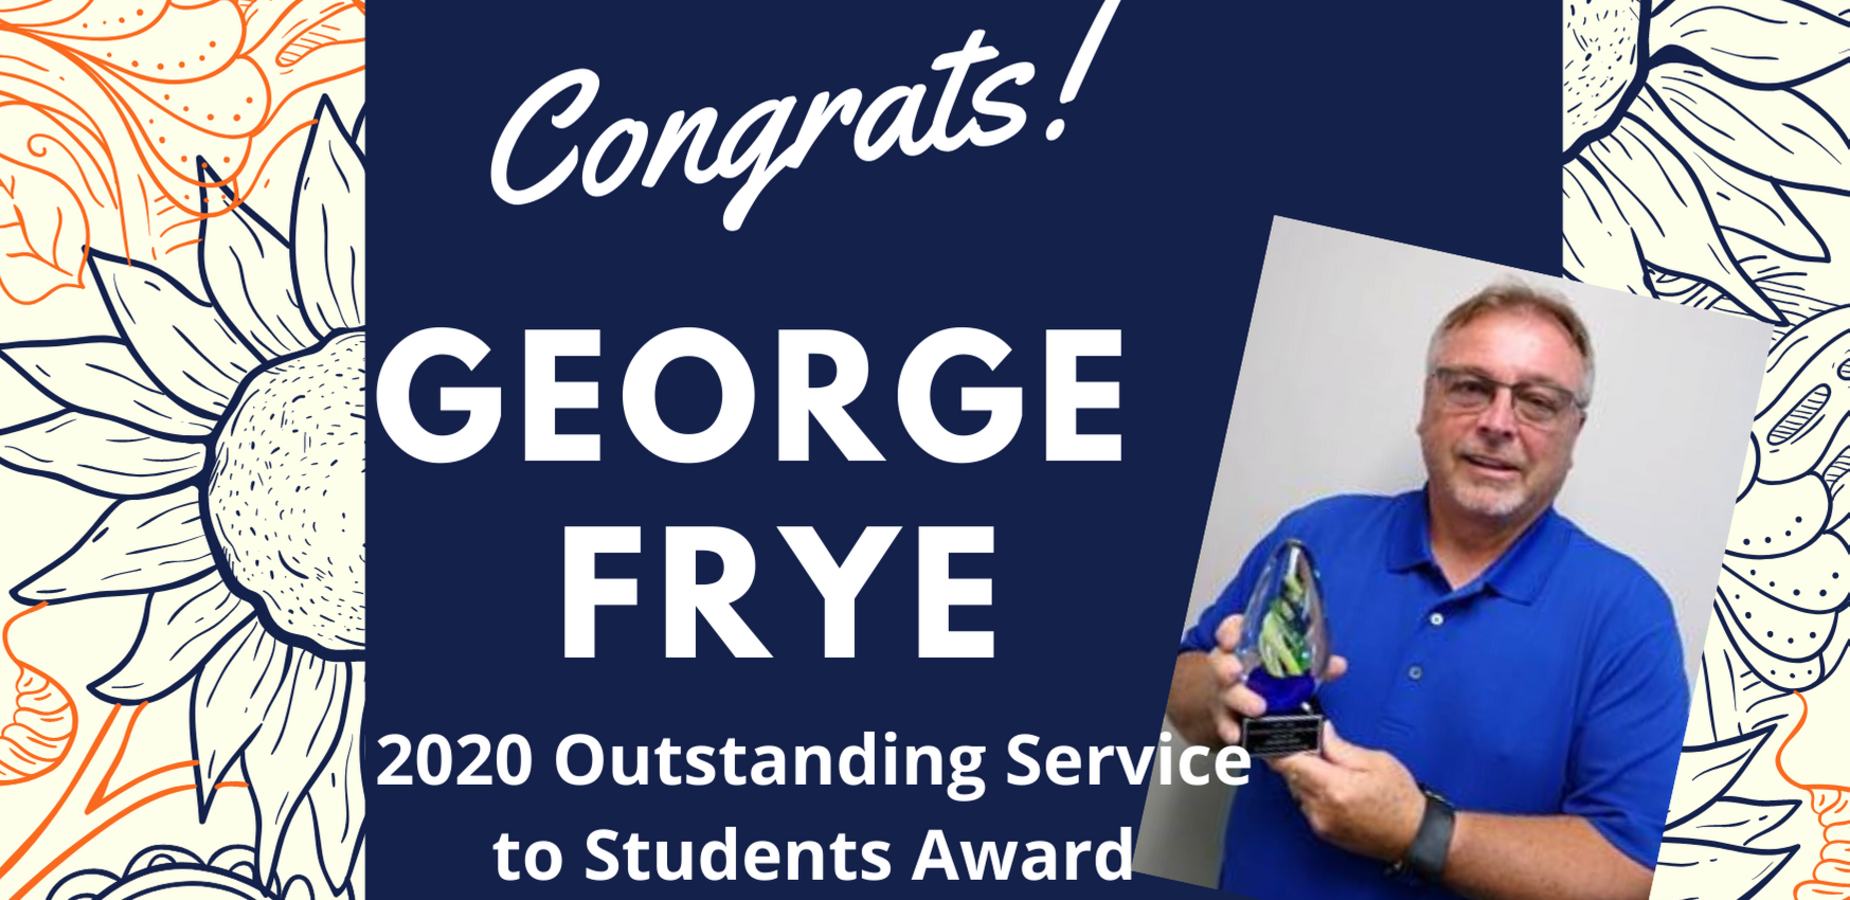 George Frye - Outstanding Service to Students Award